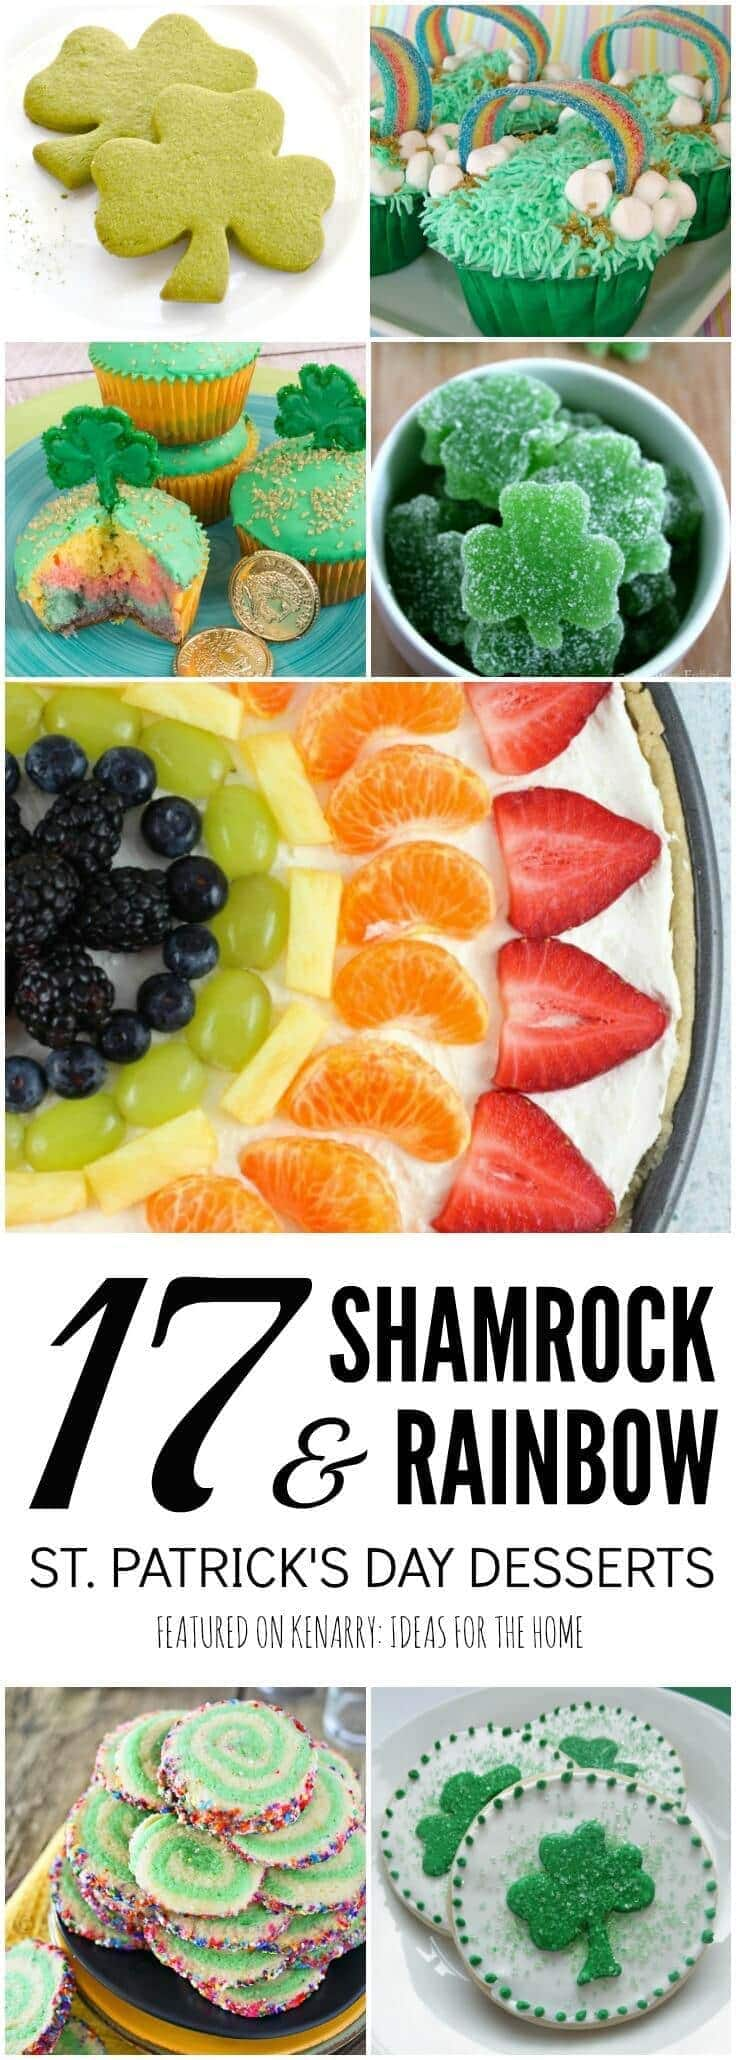 What fun shamrock and rainbow ideas for St. Patrick's Day desserts! These would be great treats to make for a party, potluck or just a special green snack for the kids.